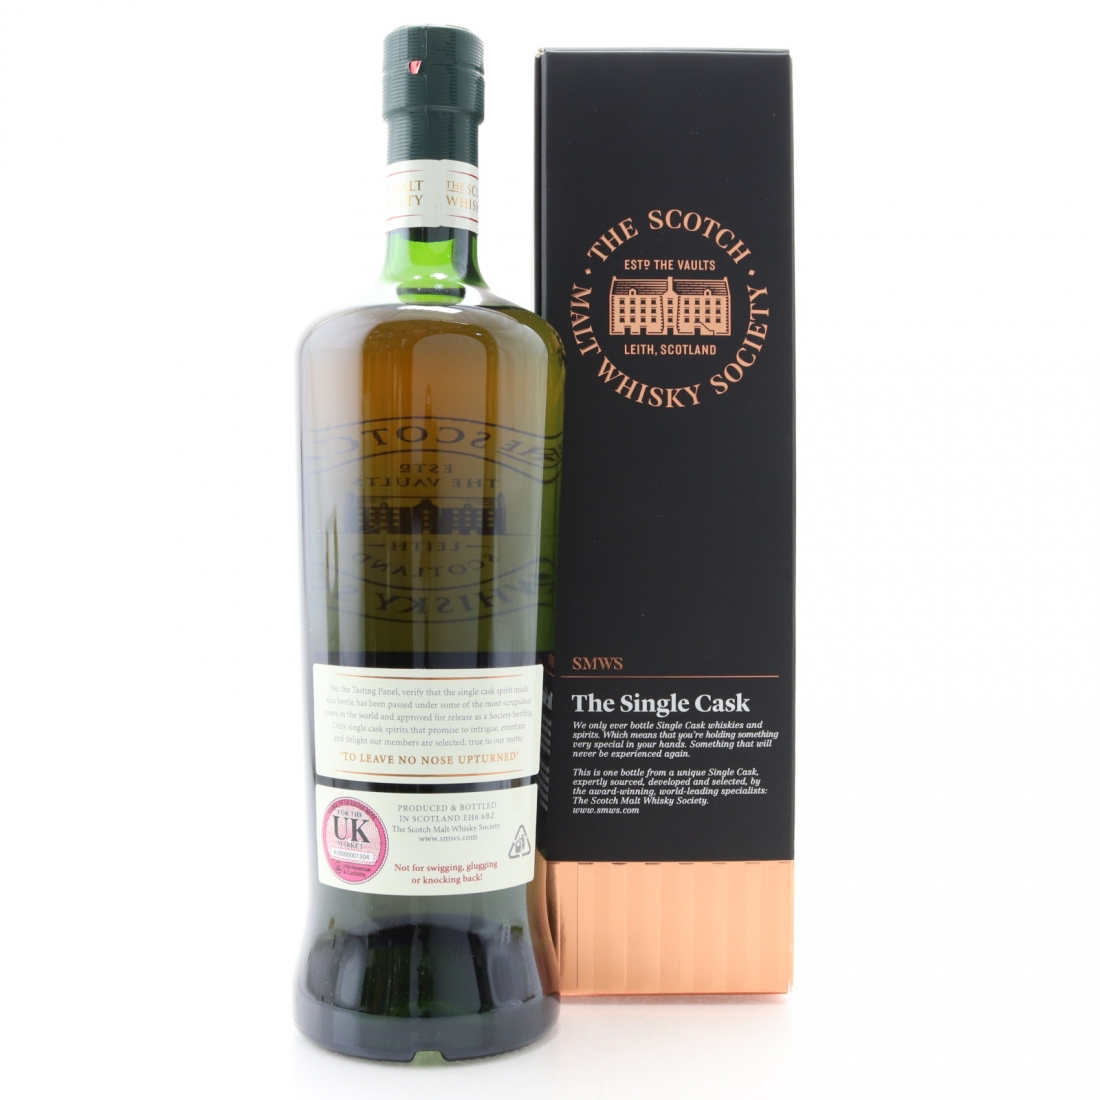 Glenrothes 1991 SMWS 24 Year Old 30.89